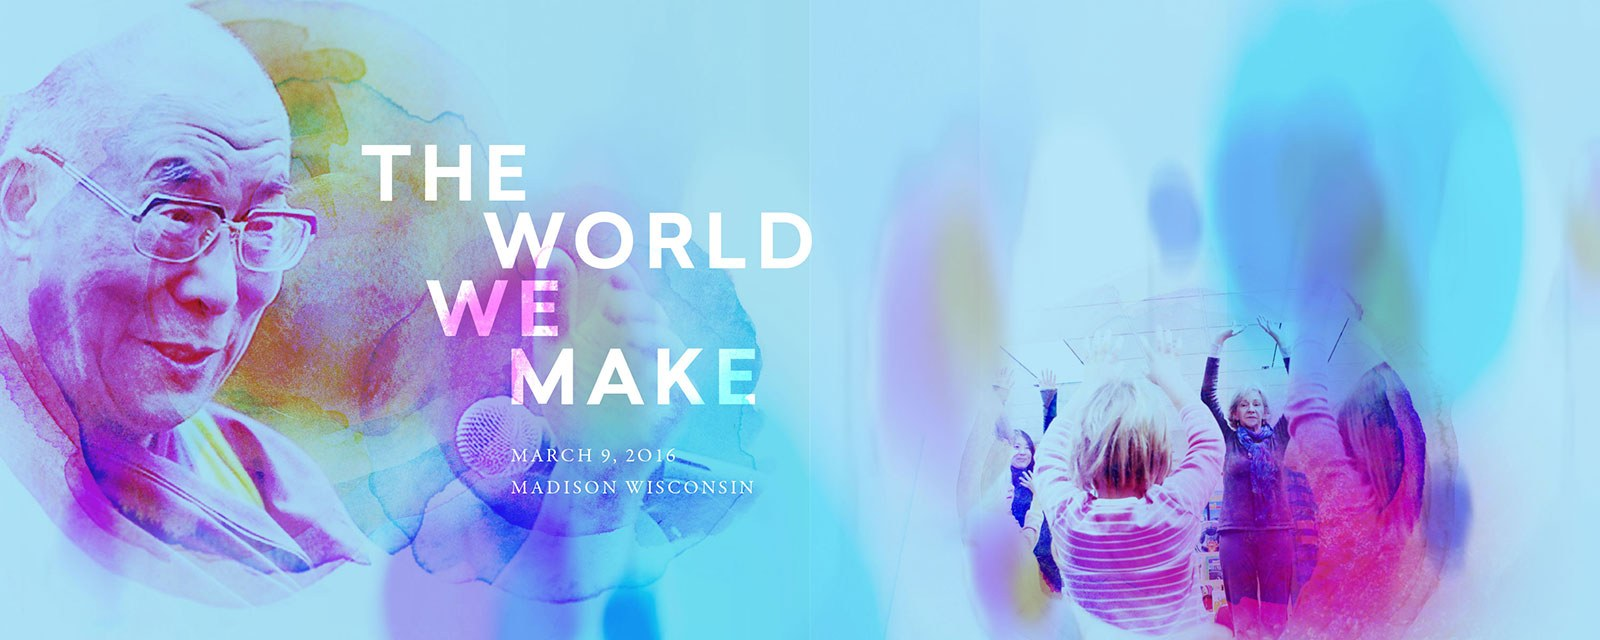 The World We Make: Well-Being in 2030 - Center for Healthy Minds